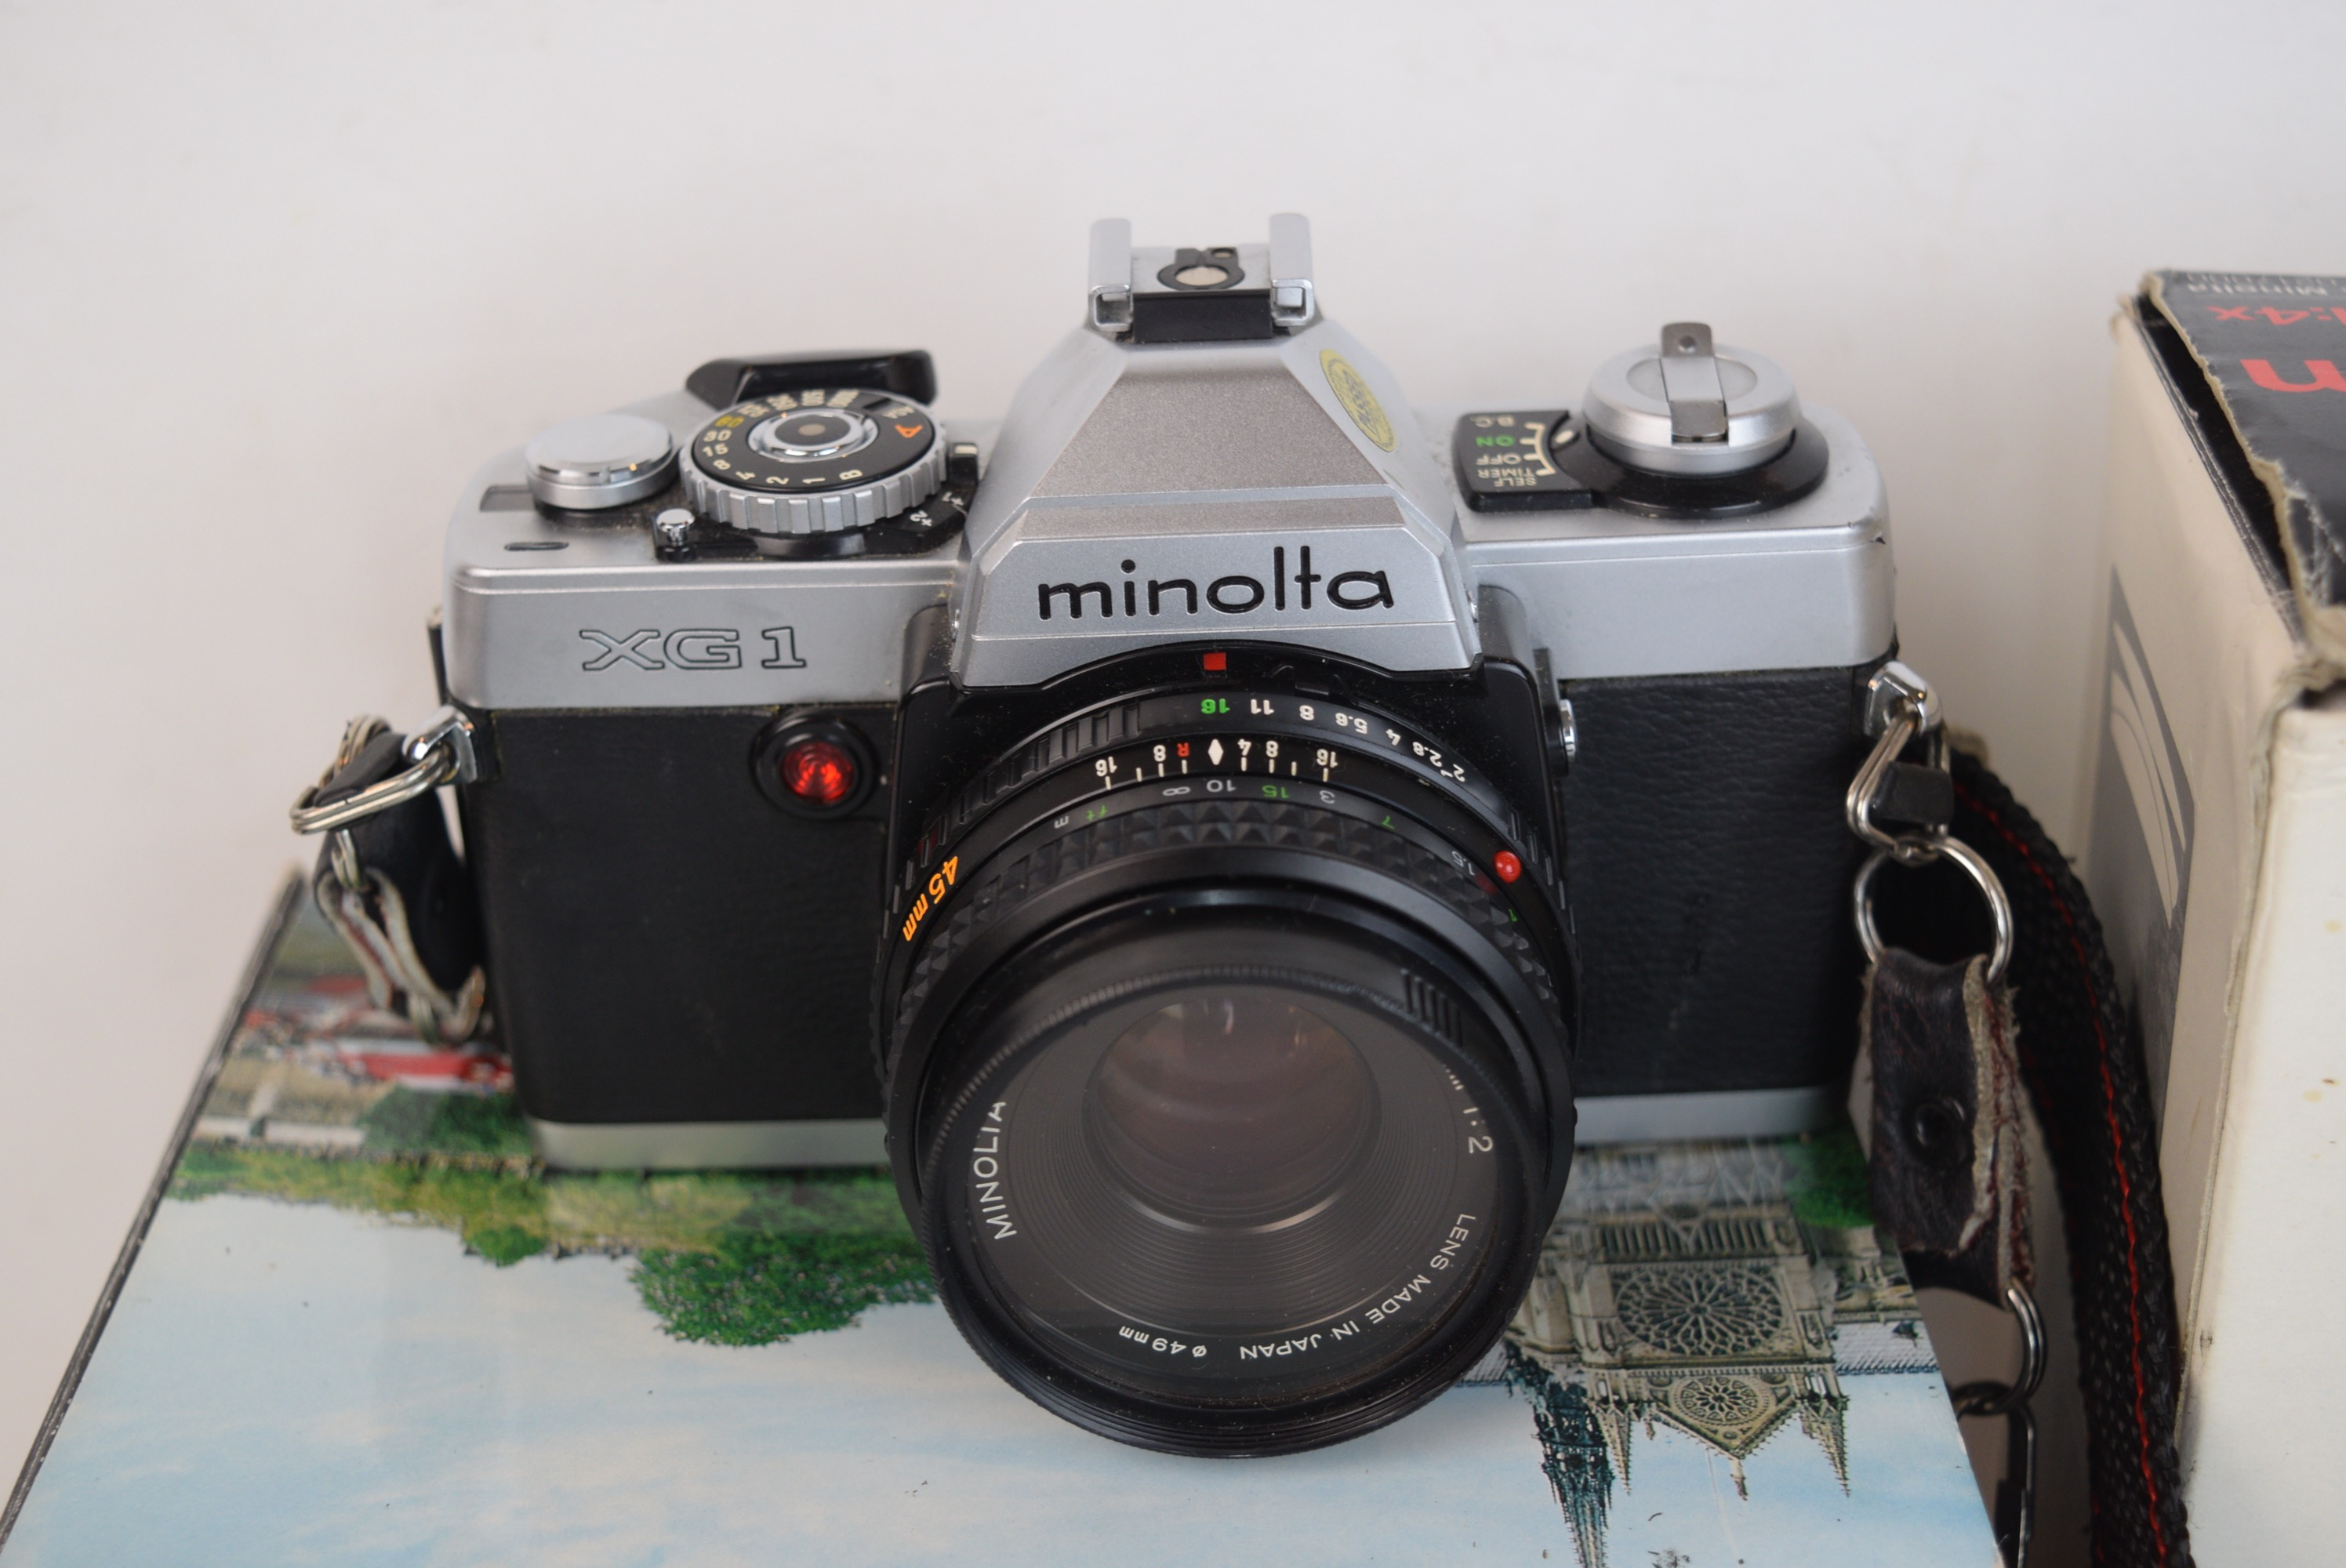 Minolta Xg 1 And Accessories